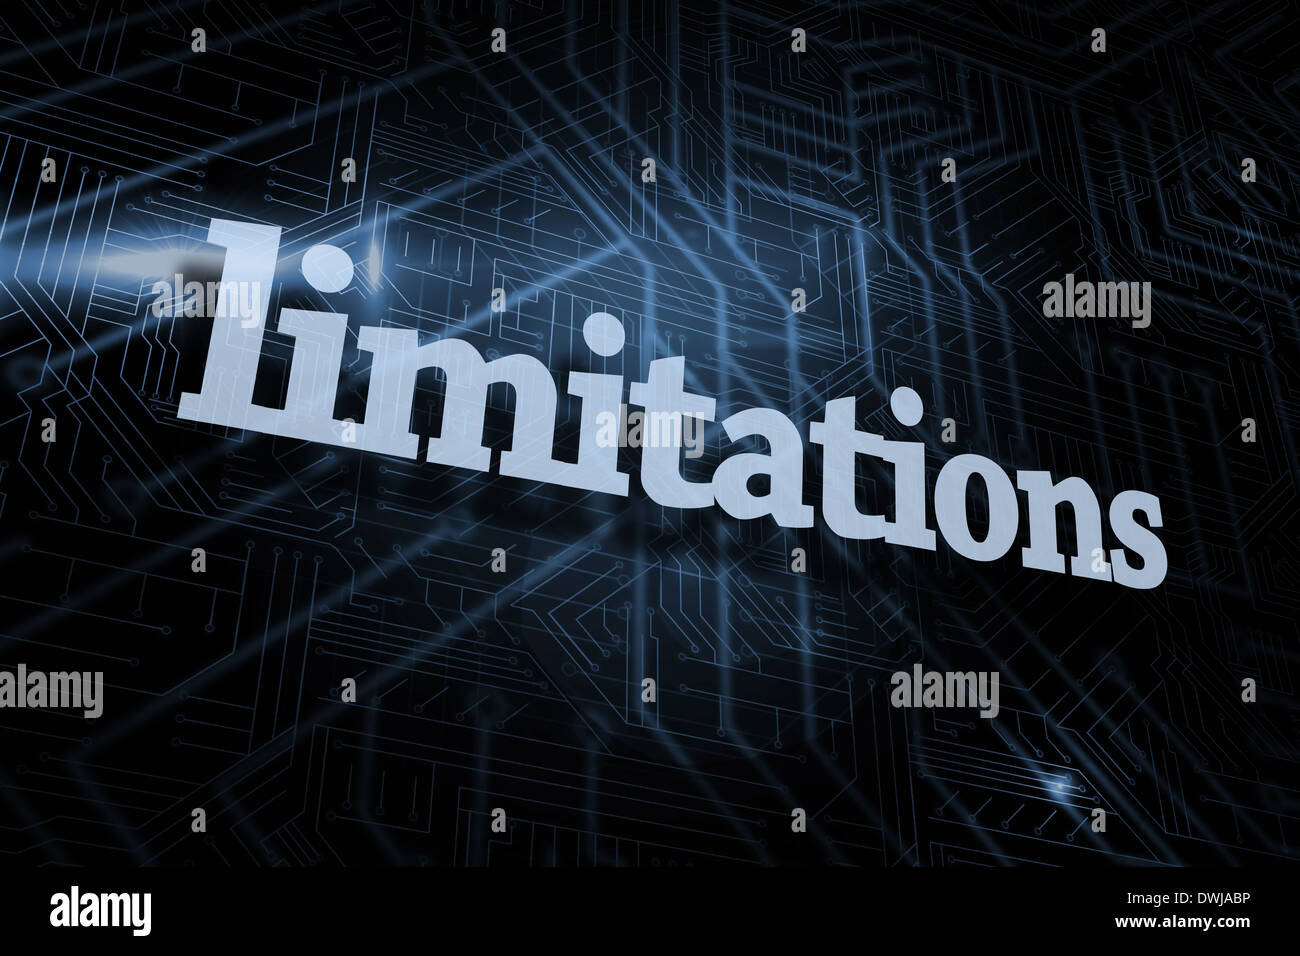 Limitations against futuristic black and blue background - Stock Image